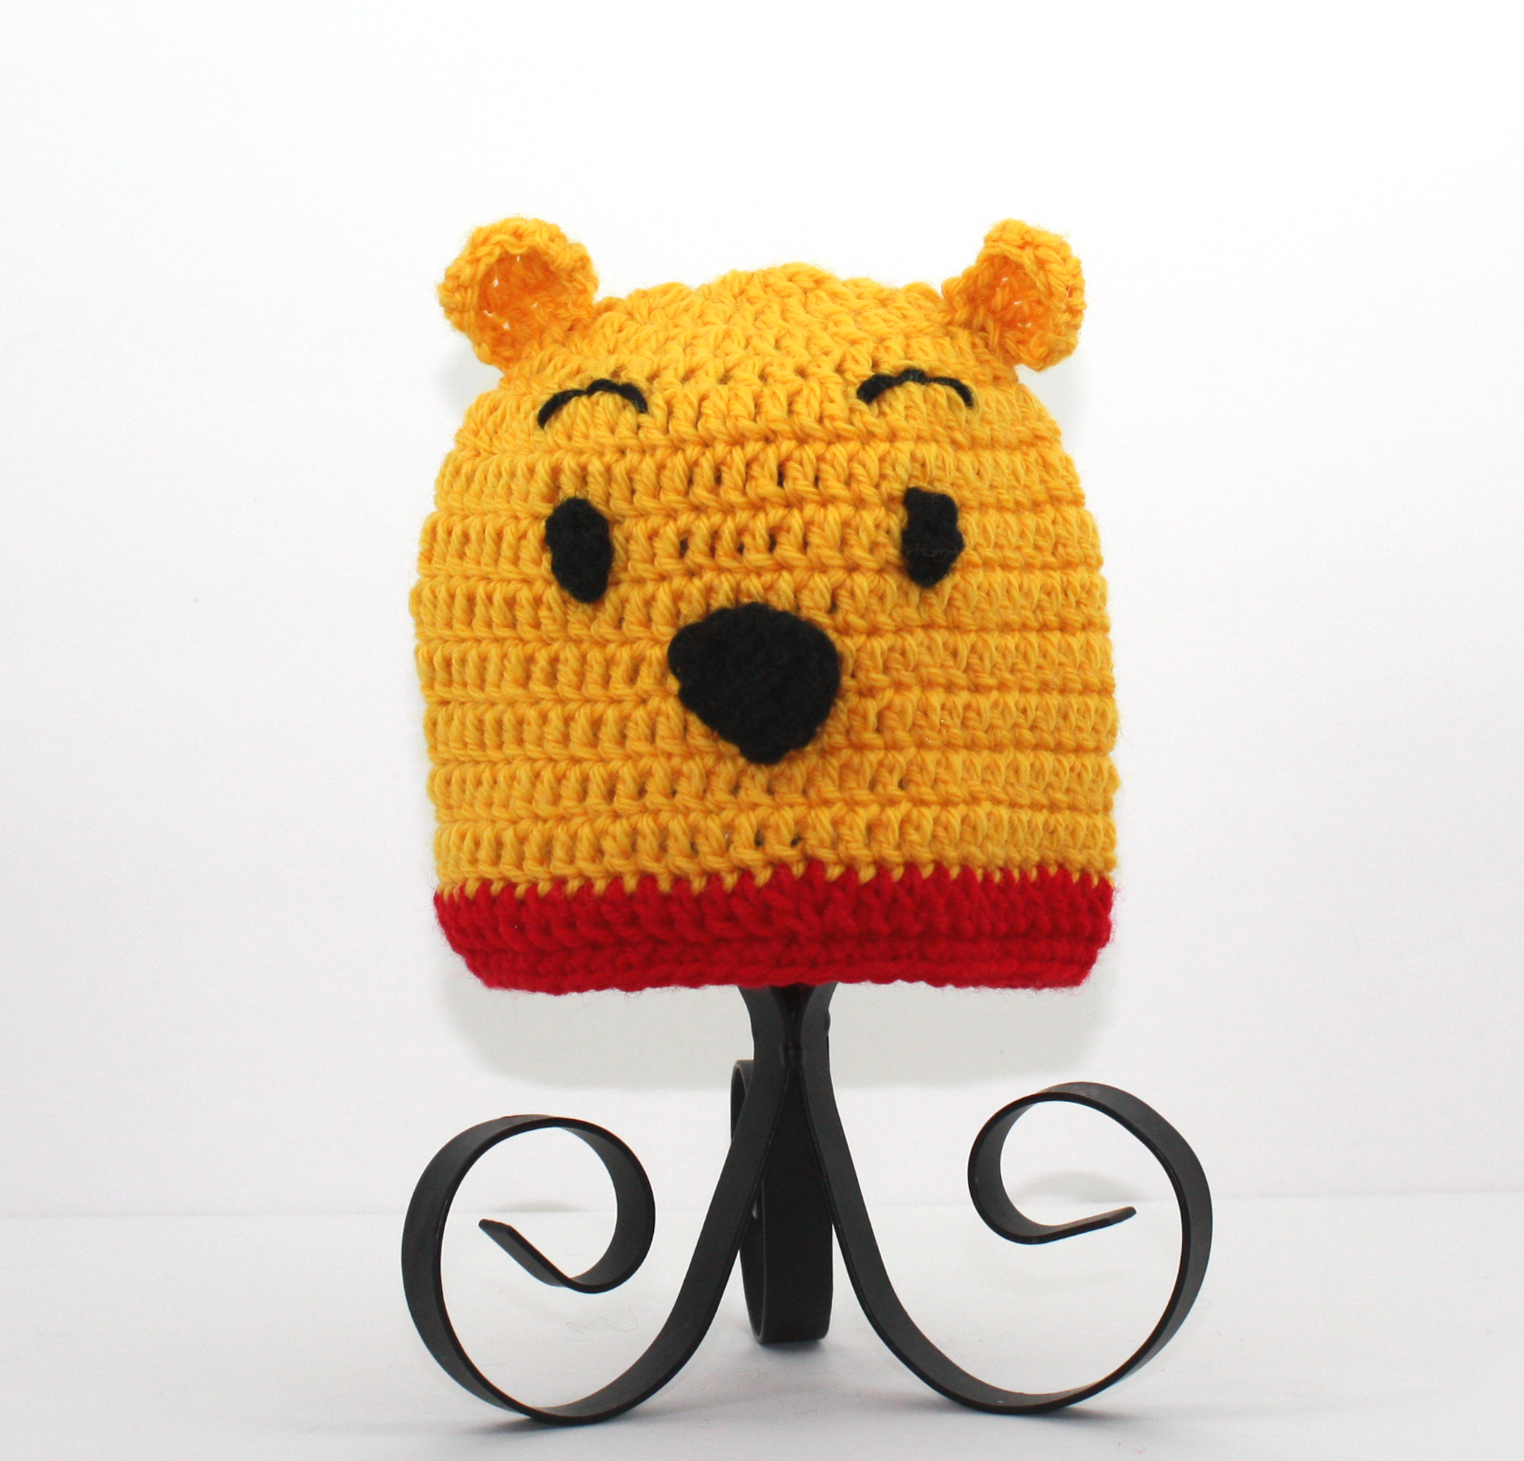 Pooh Bear Hat from Winnie the Pooh